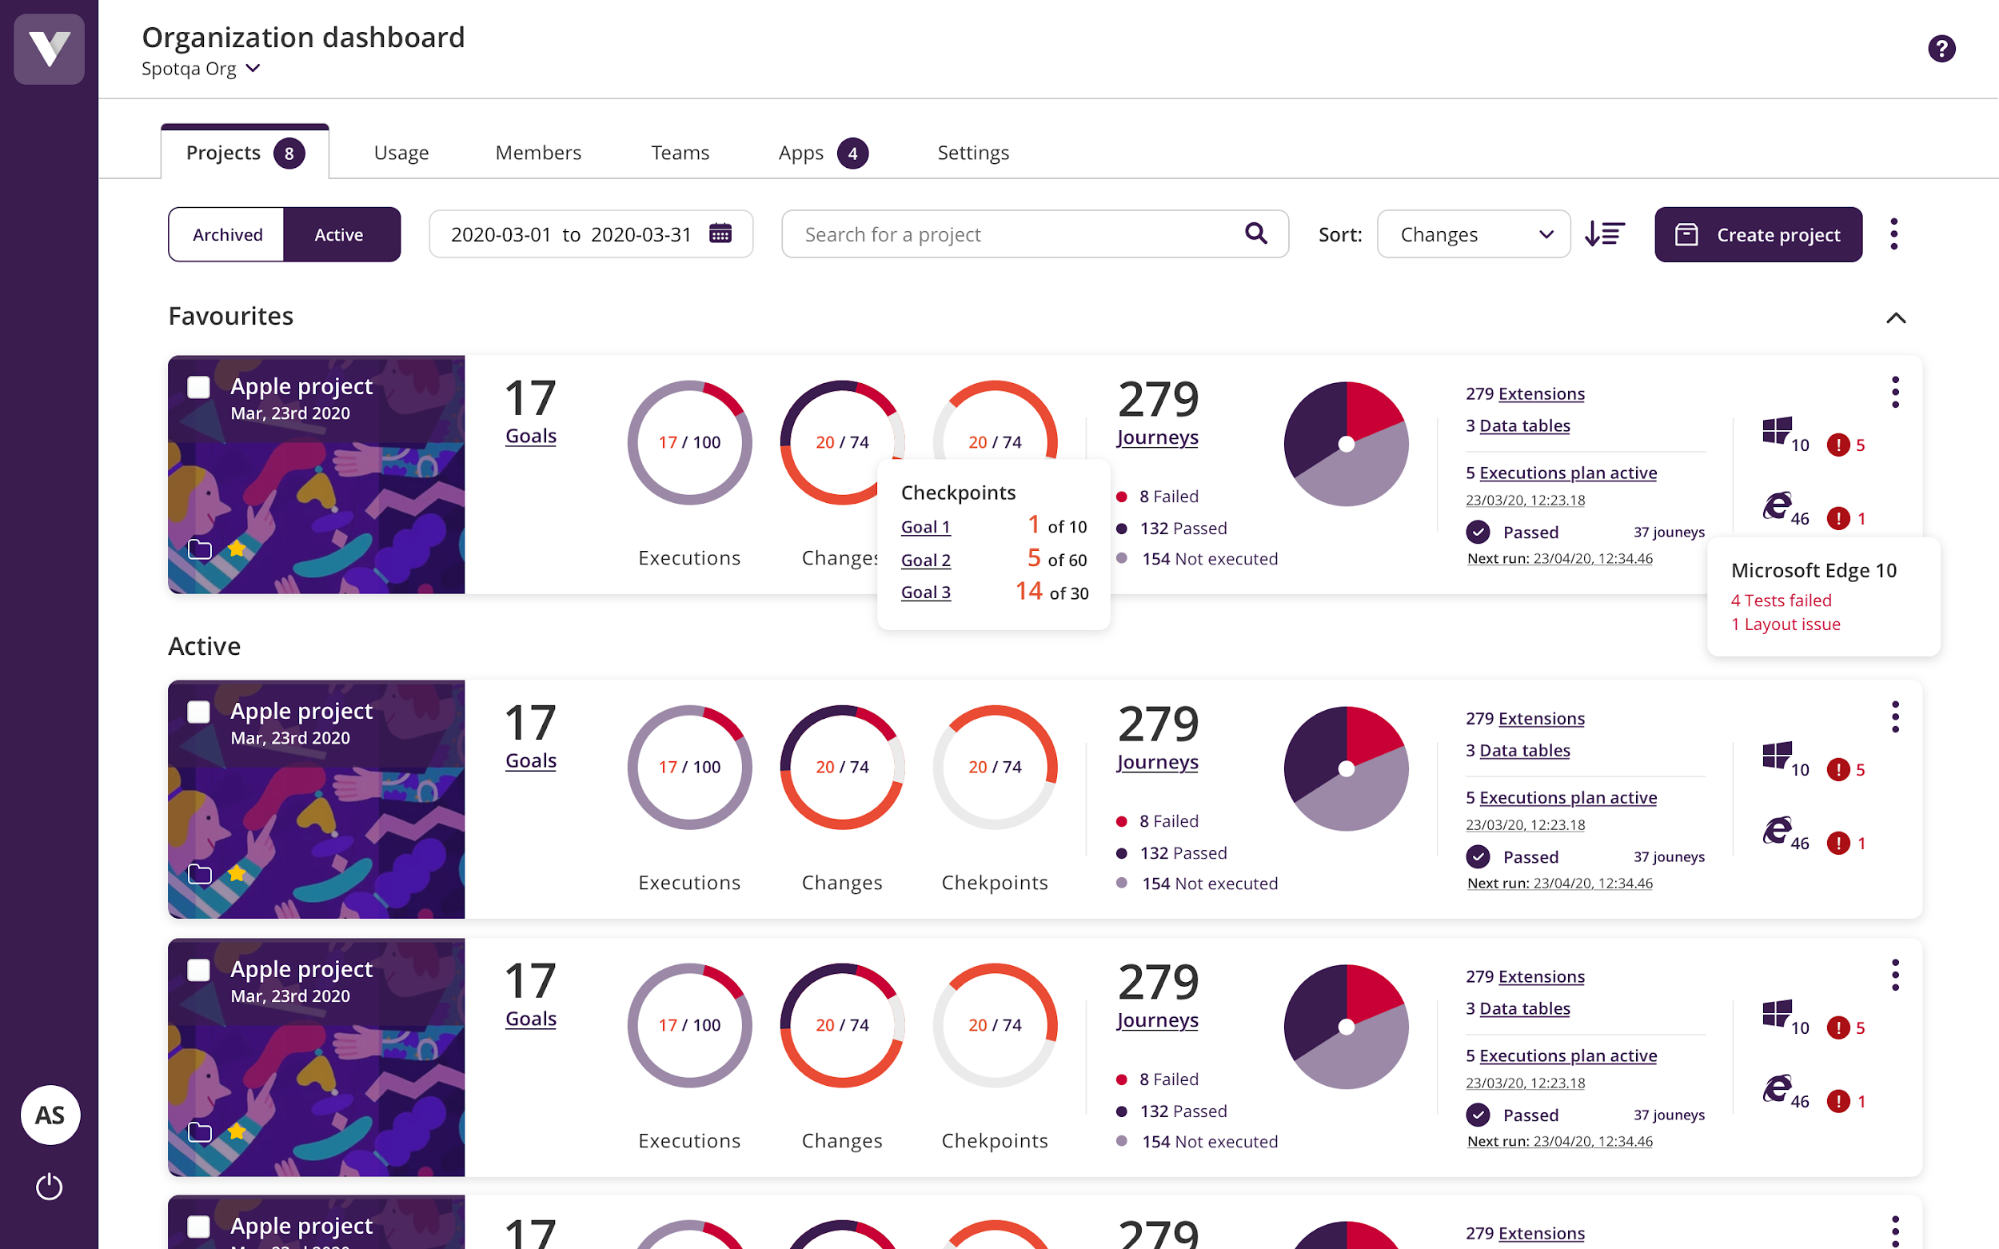 An image of the updated Virtuoso dashboard